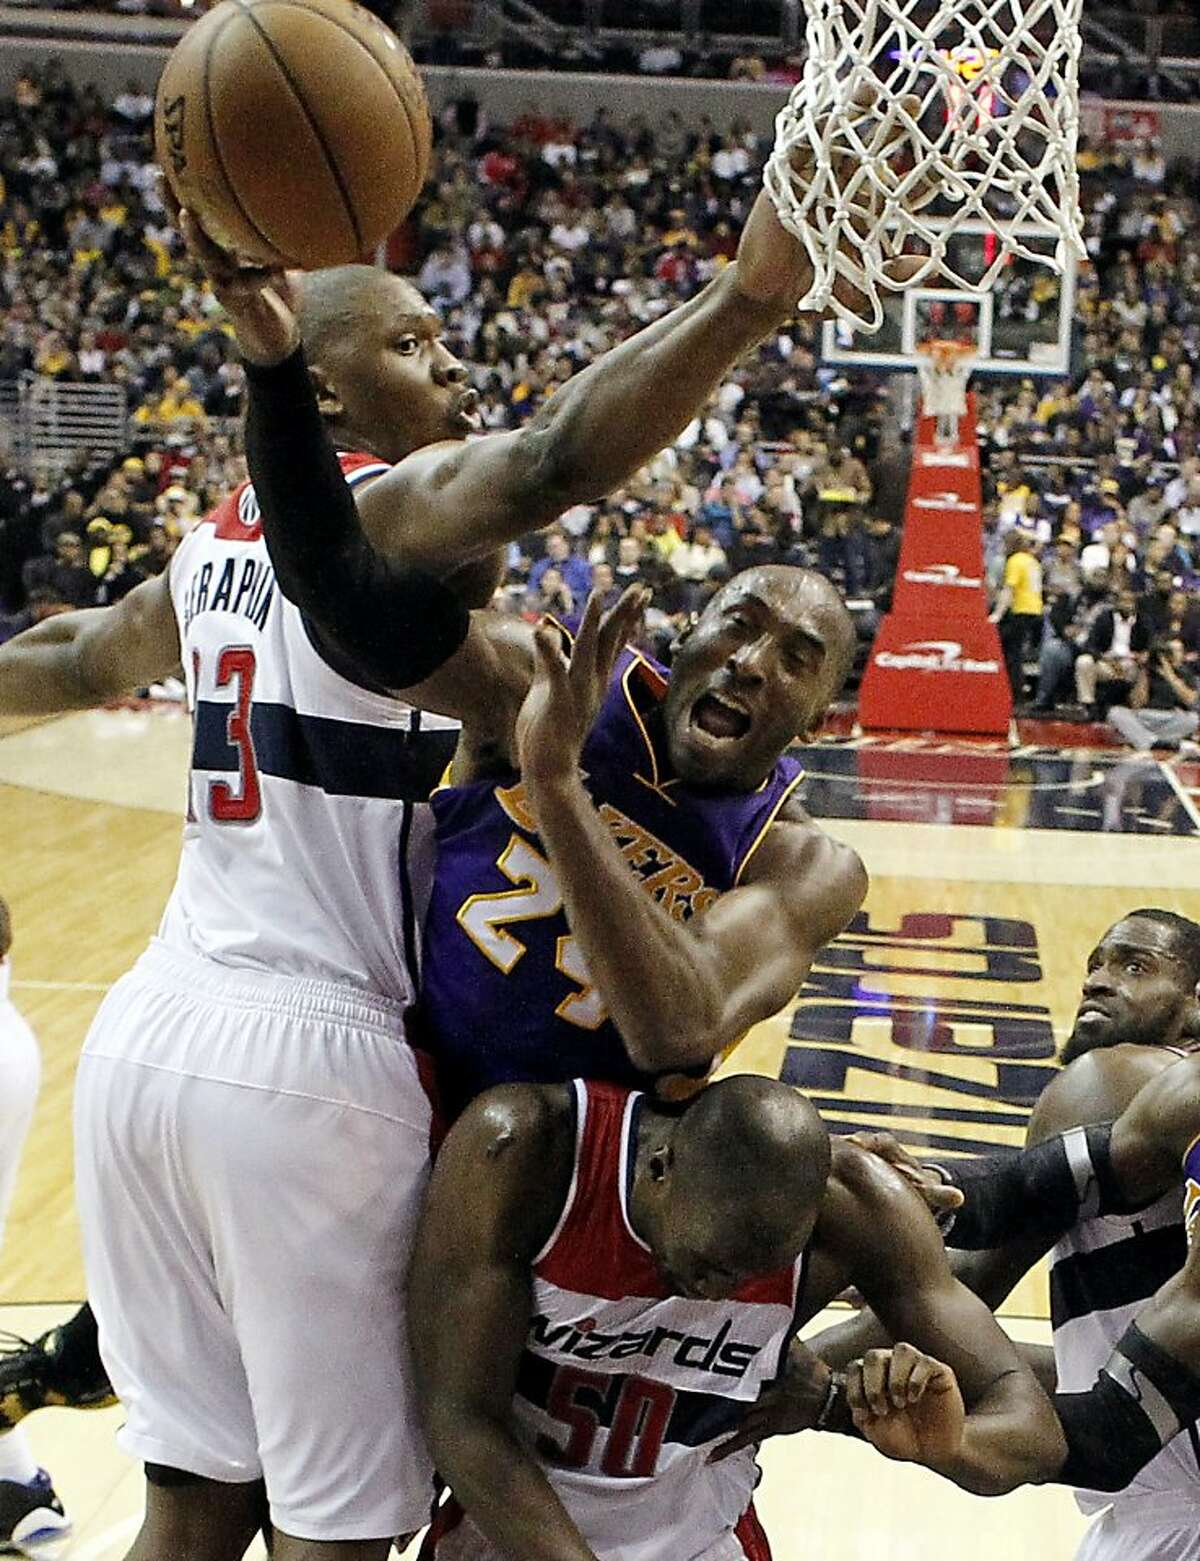 Los Angeles Lakers guard Kobe Bryant is sandwiched between Washington Wizards forward Kevin Seraphin (13) from France, and center Emeka Okafor (50), in the second half of an NBA basketball game Friday, Dec. 14, 2012 in Washington. The Lakers won 102-96. (AP Photo/Alex Brandon)